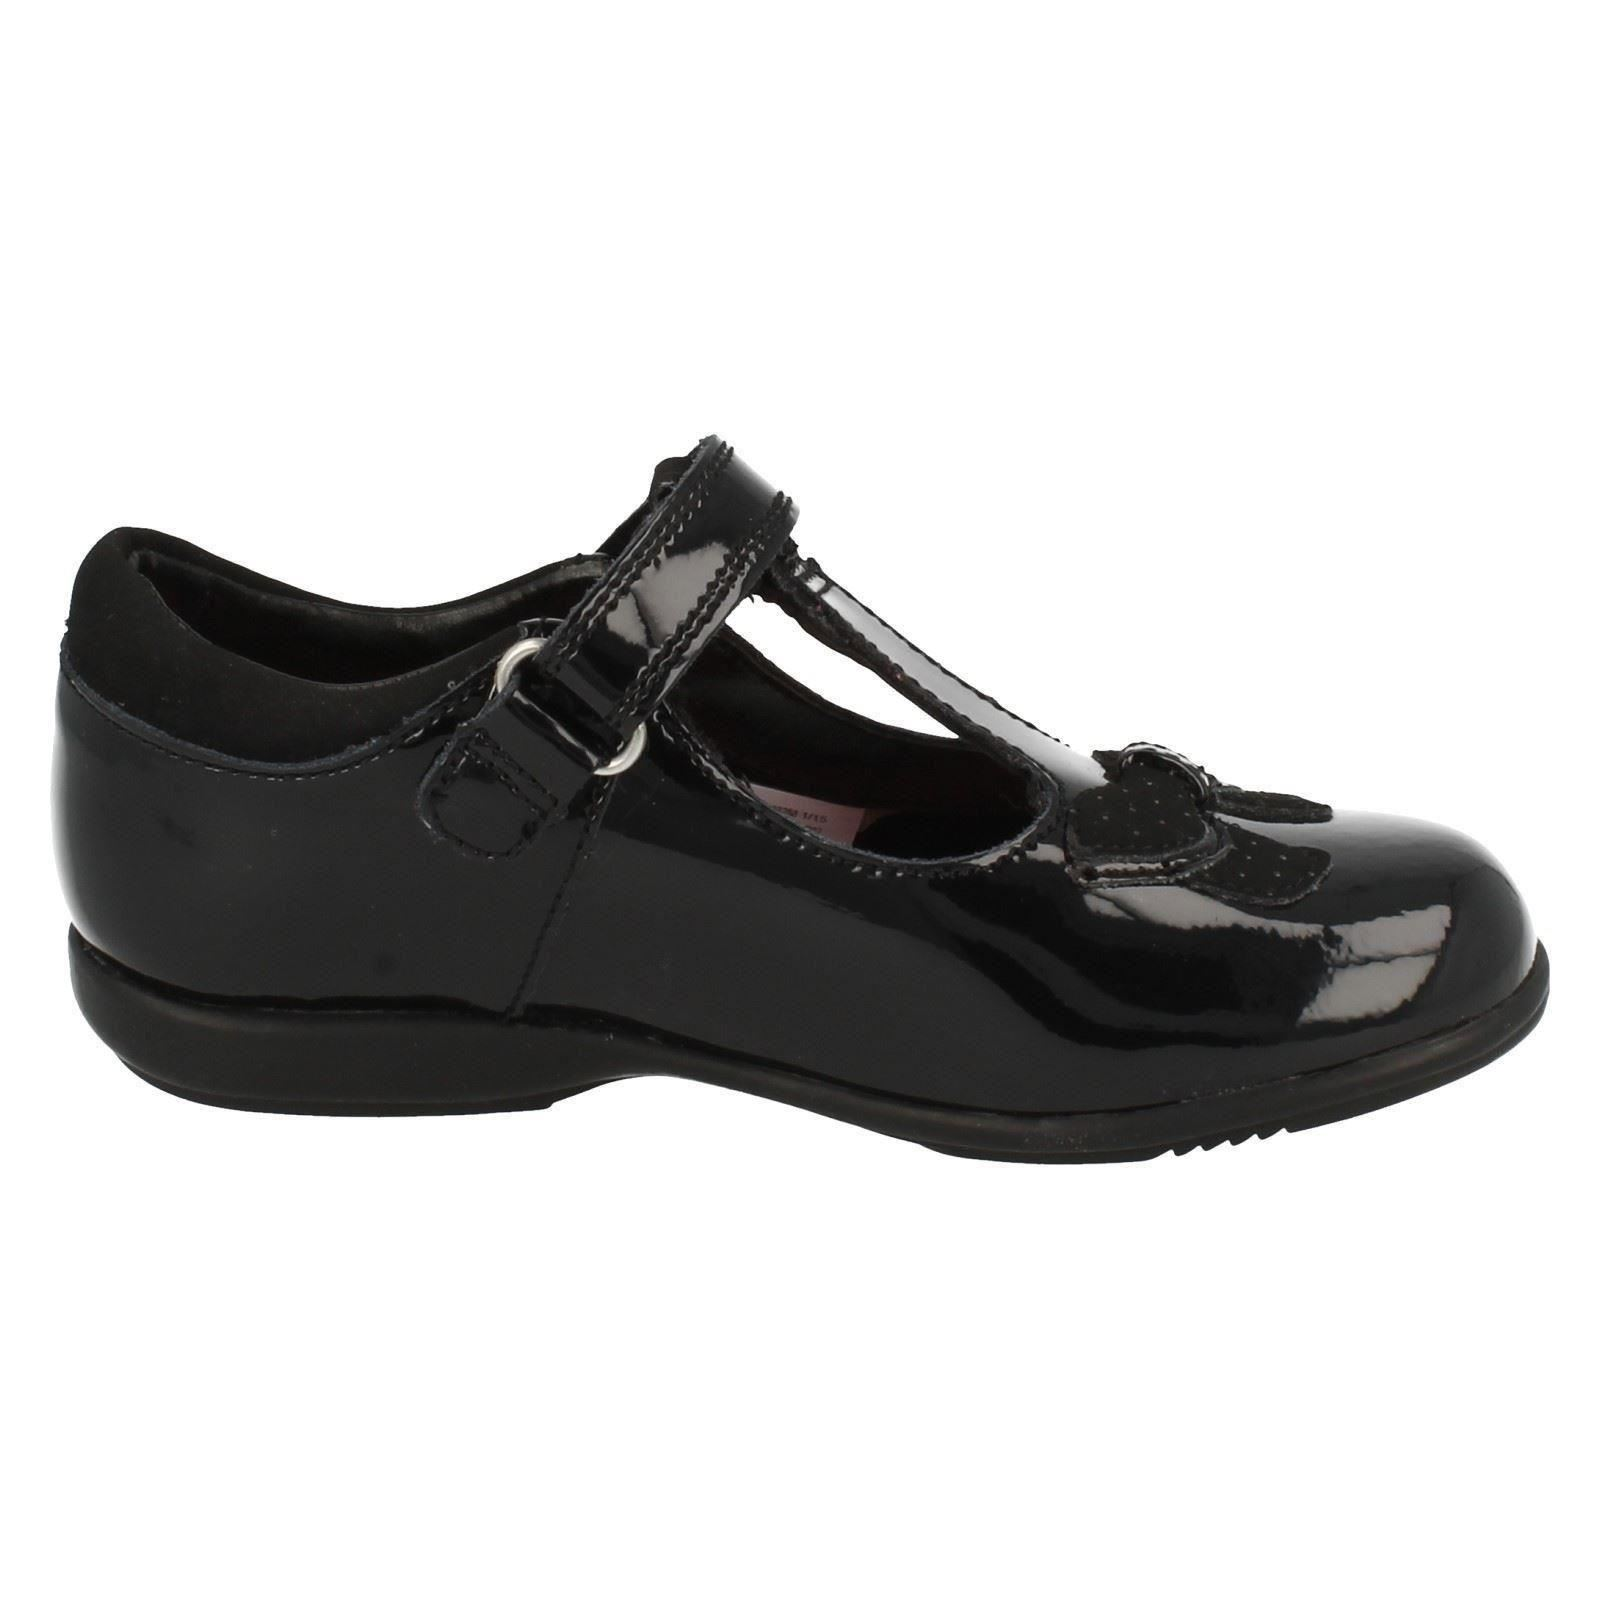 Girls Clarks School Shoes /'Trixi Bell/'